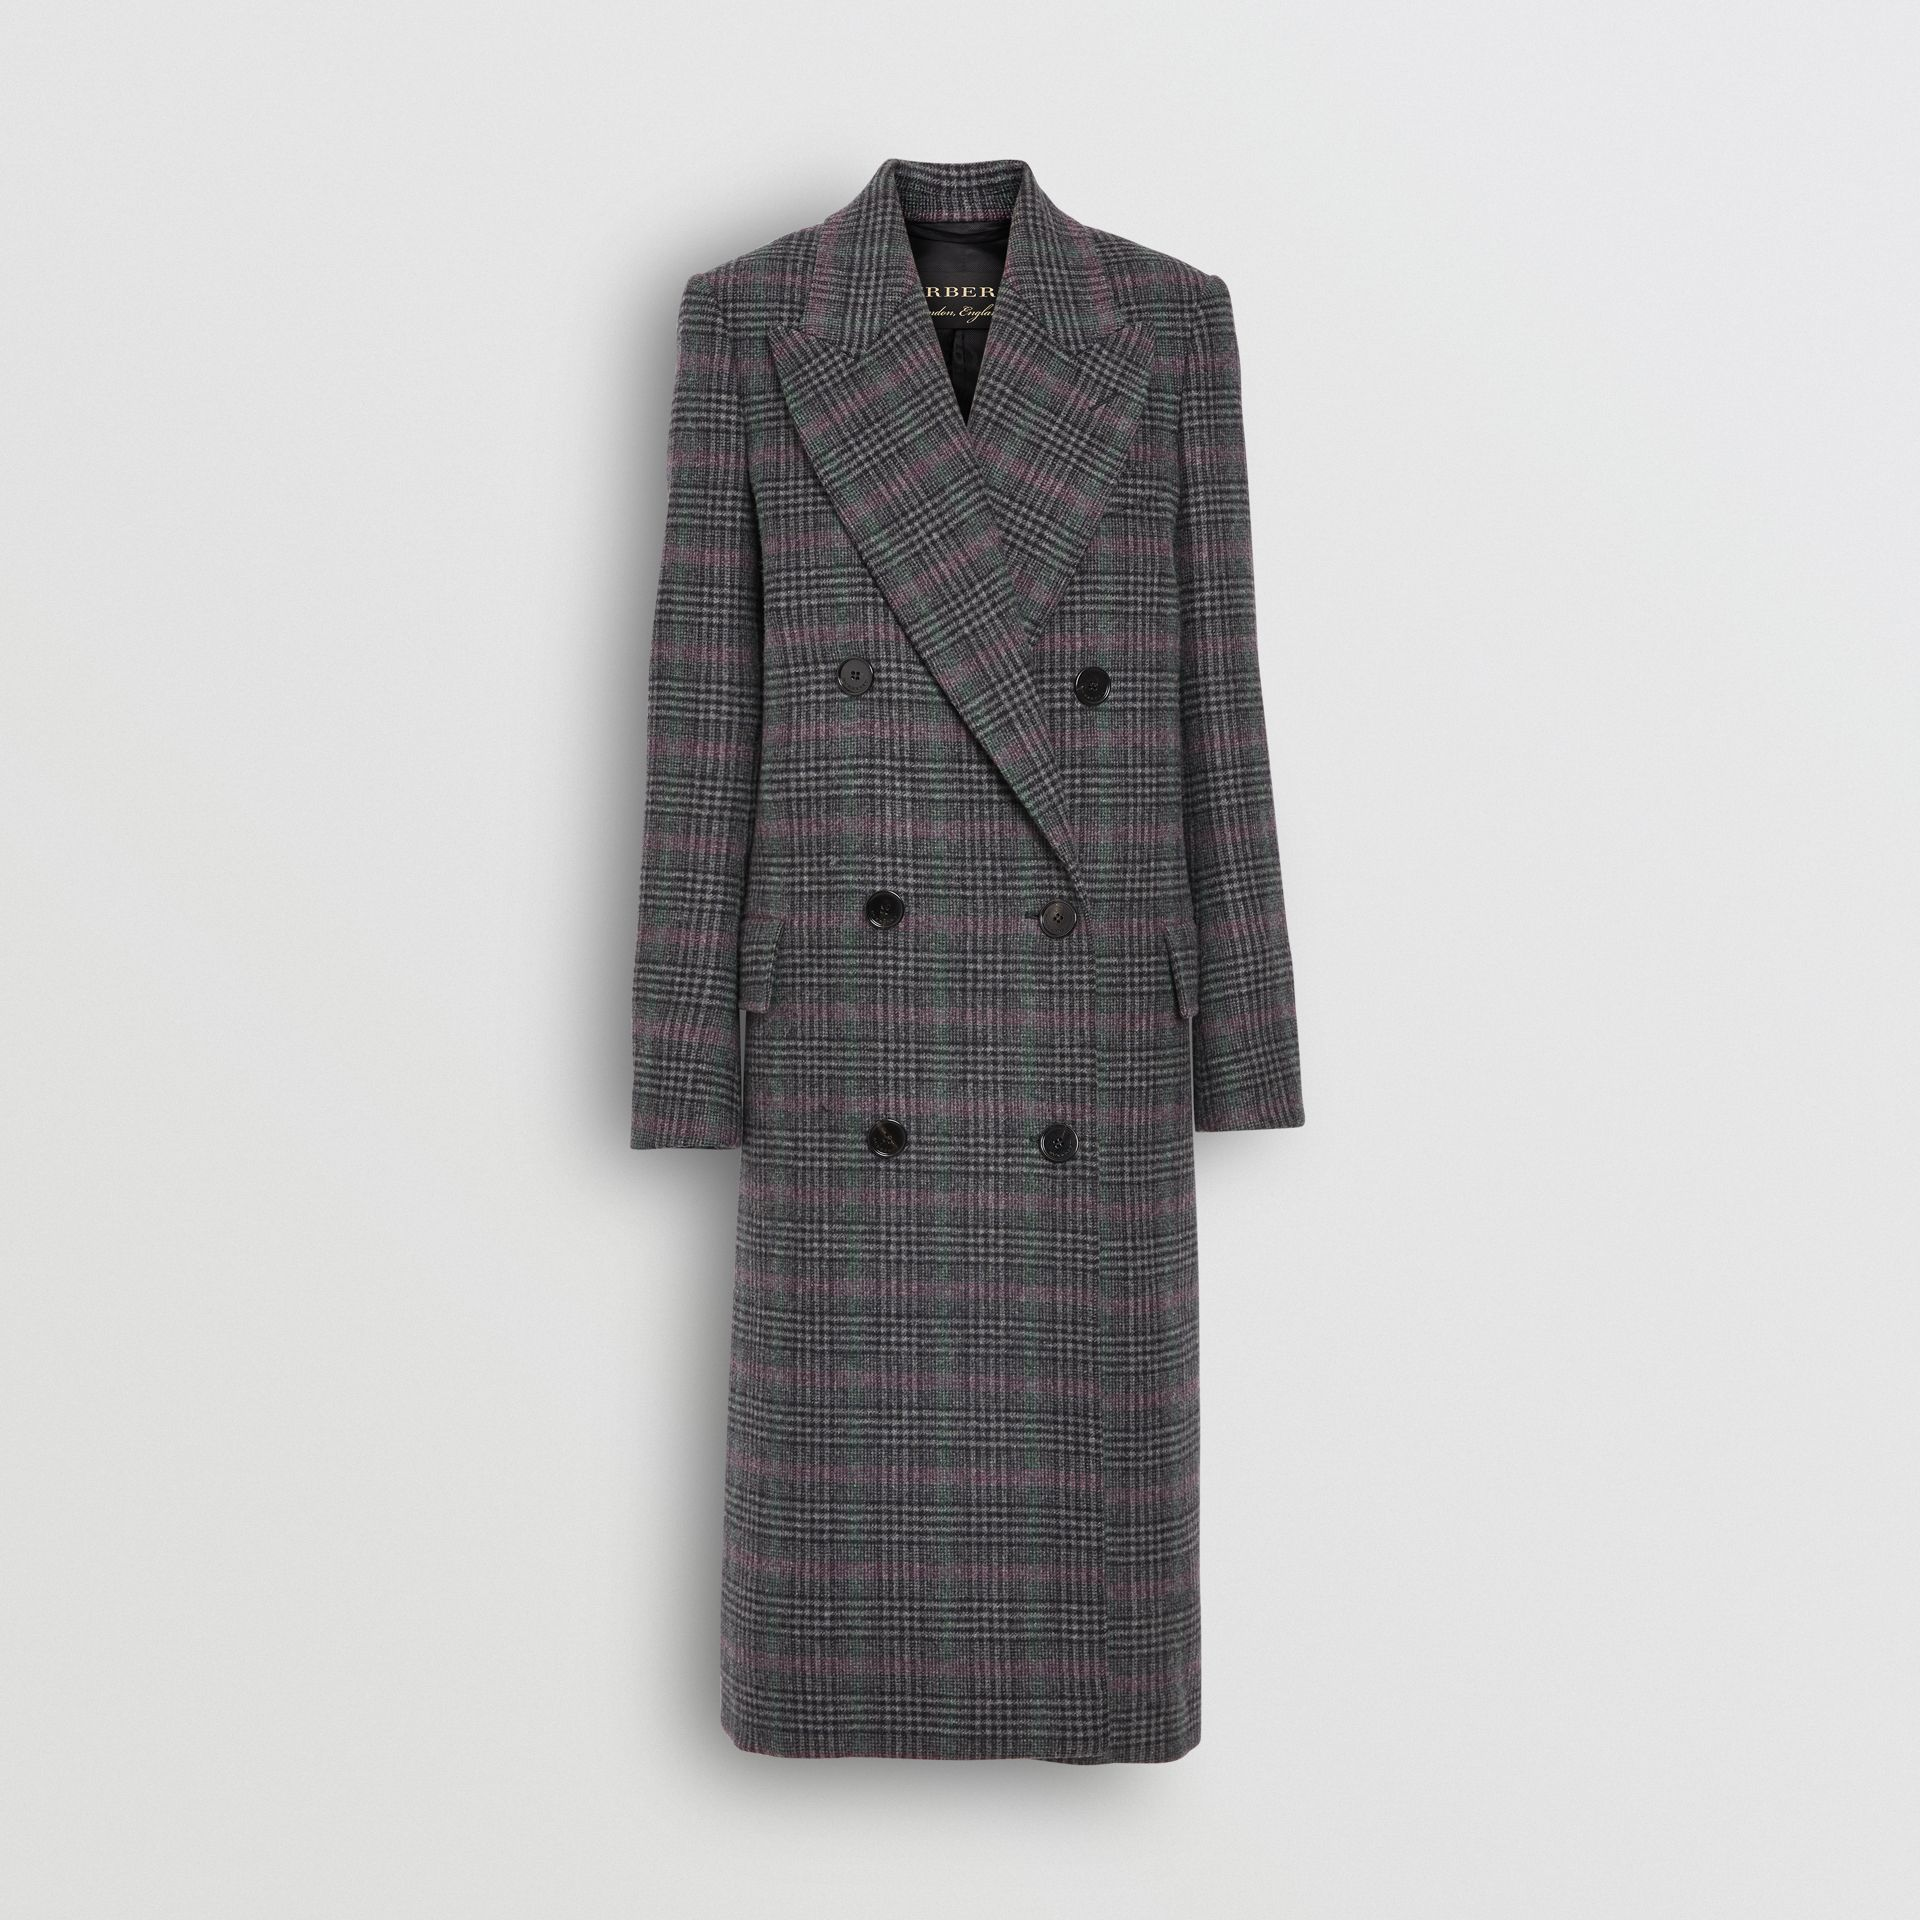 Prince of Wales Check Wool Tailored Coat in Charcoal - Women | Burberry United Kingdom - gallery image 3